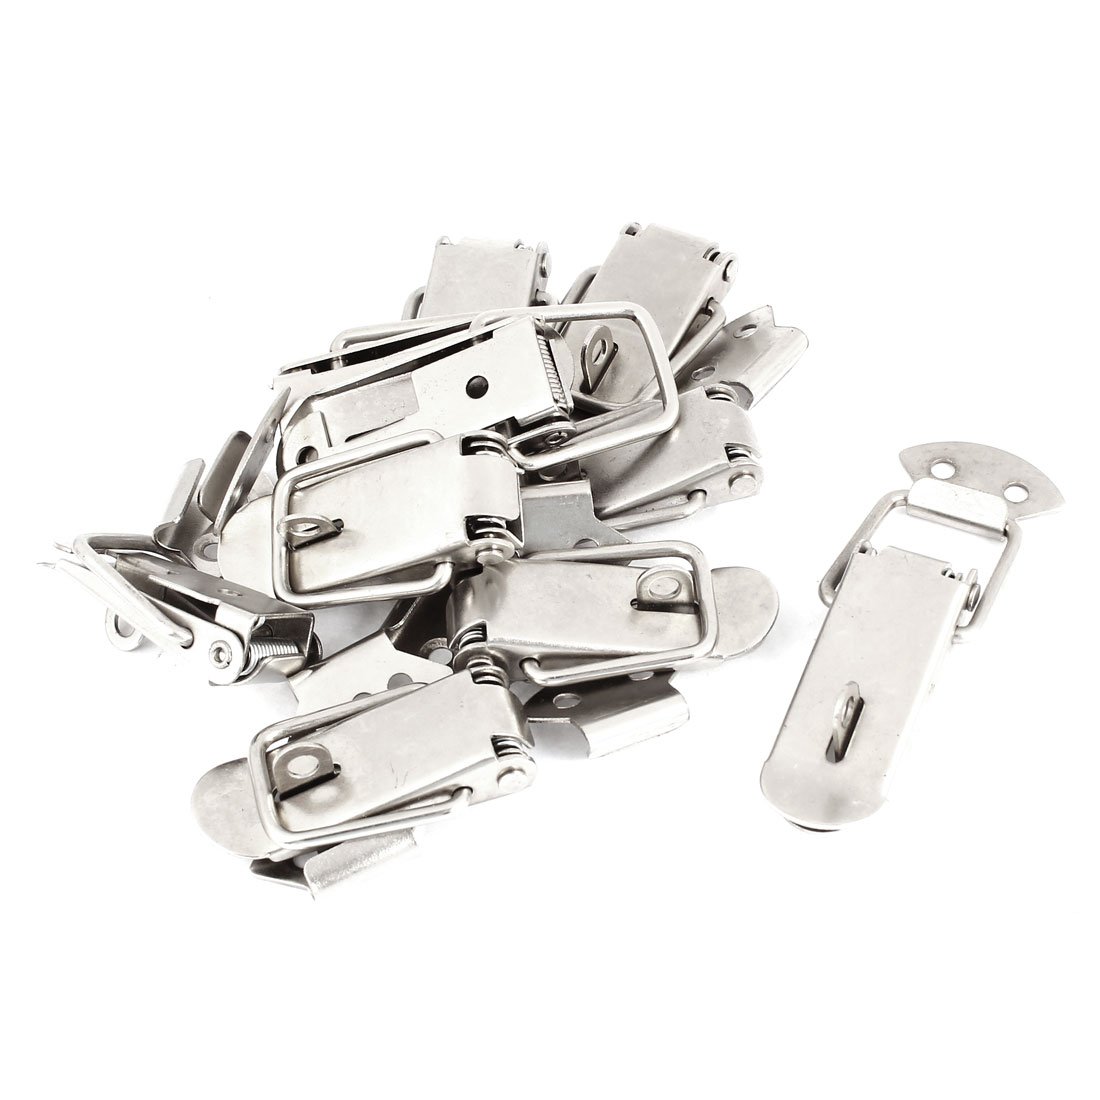 Hardware Stainless Steel Fixing Spring Toggle Latch Hasp 10 Sets